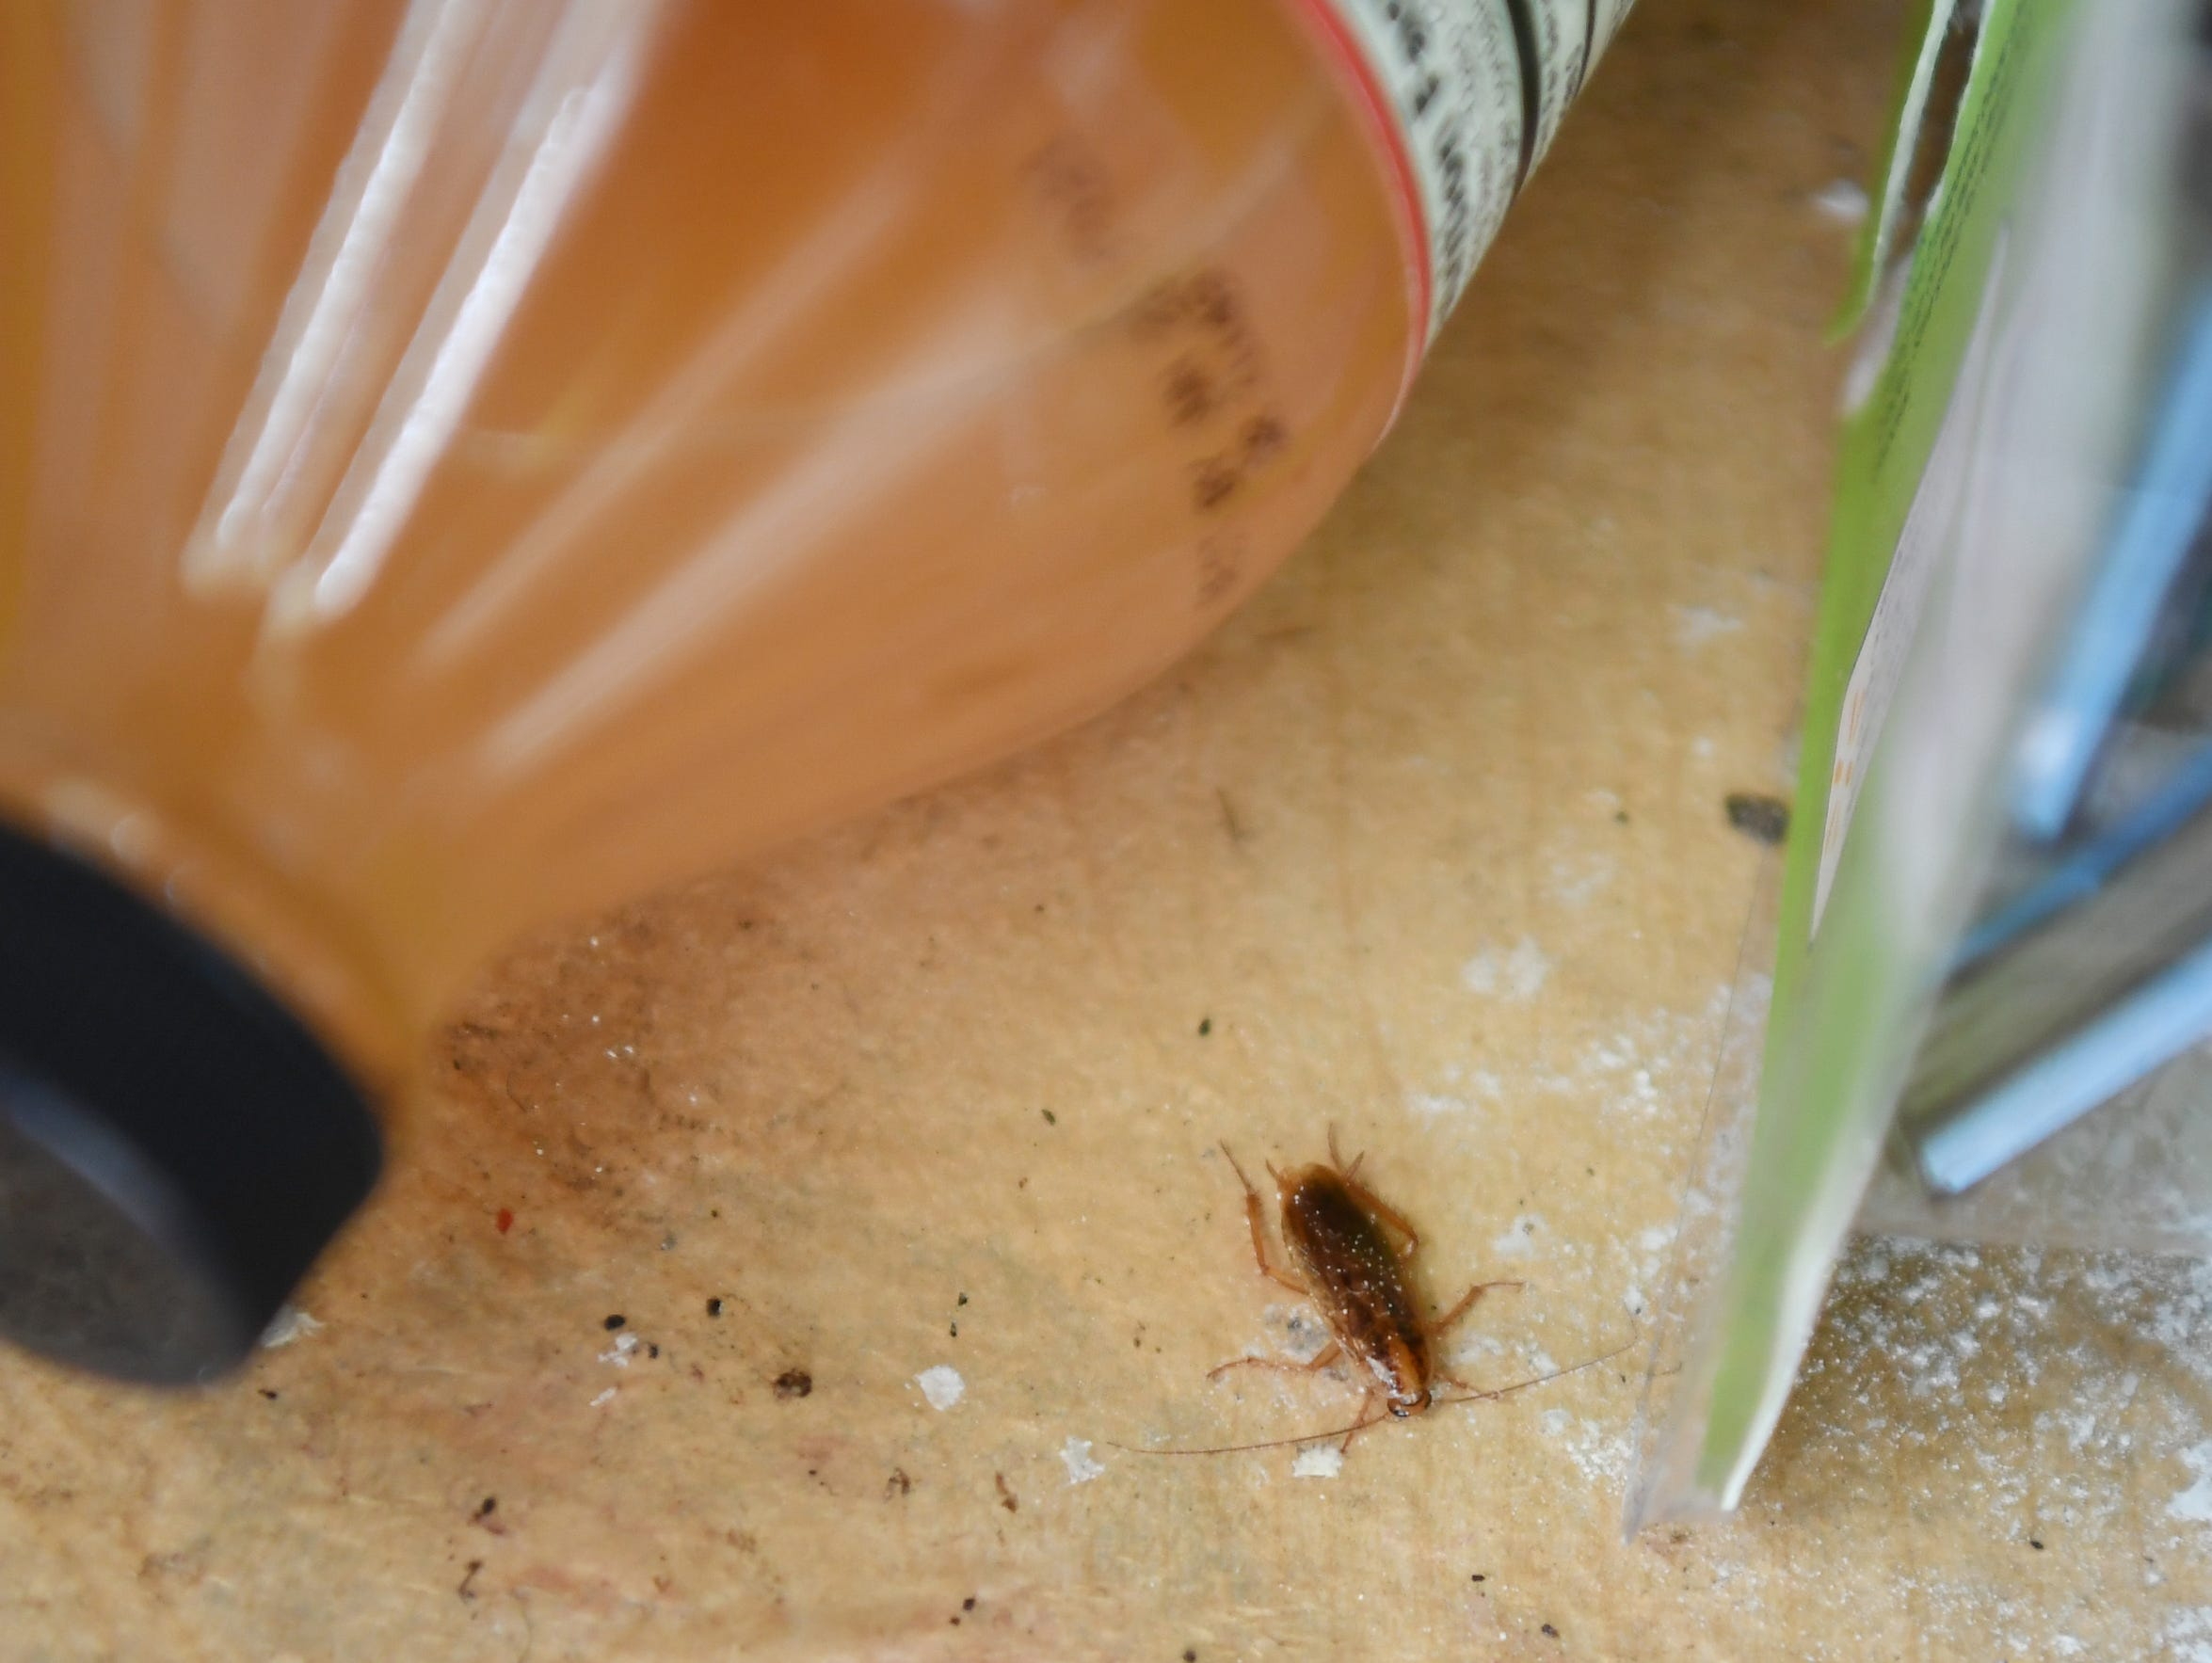 A roach in the apartment of Yanira Cortes, who lives